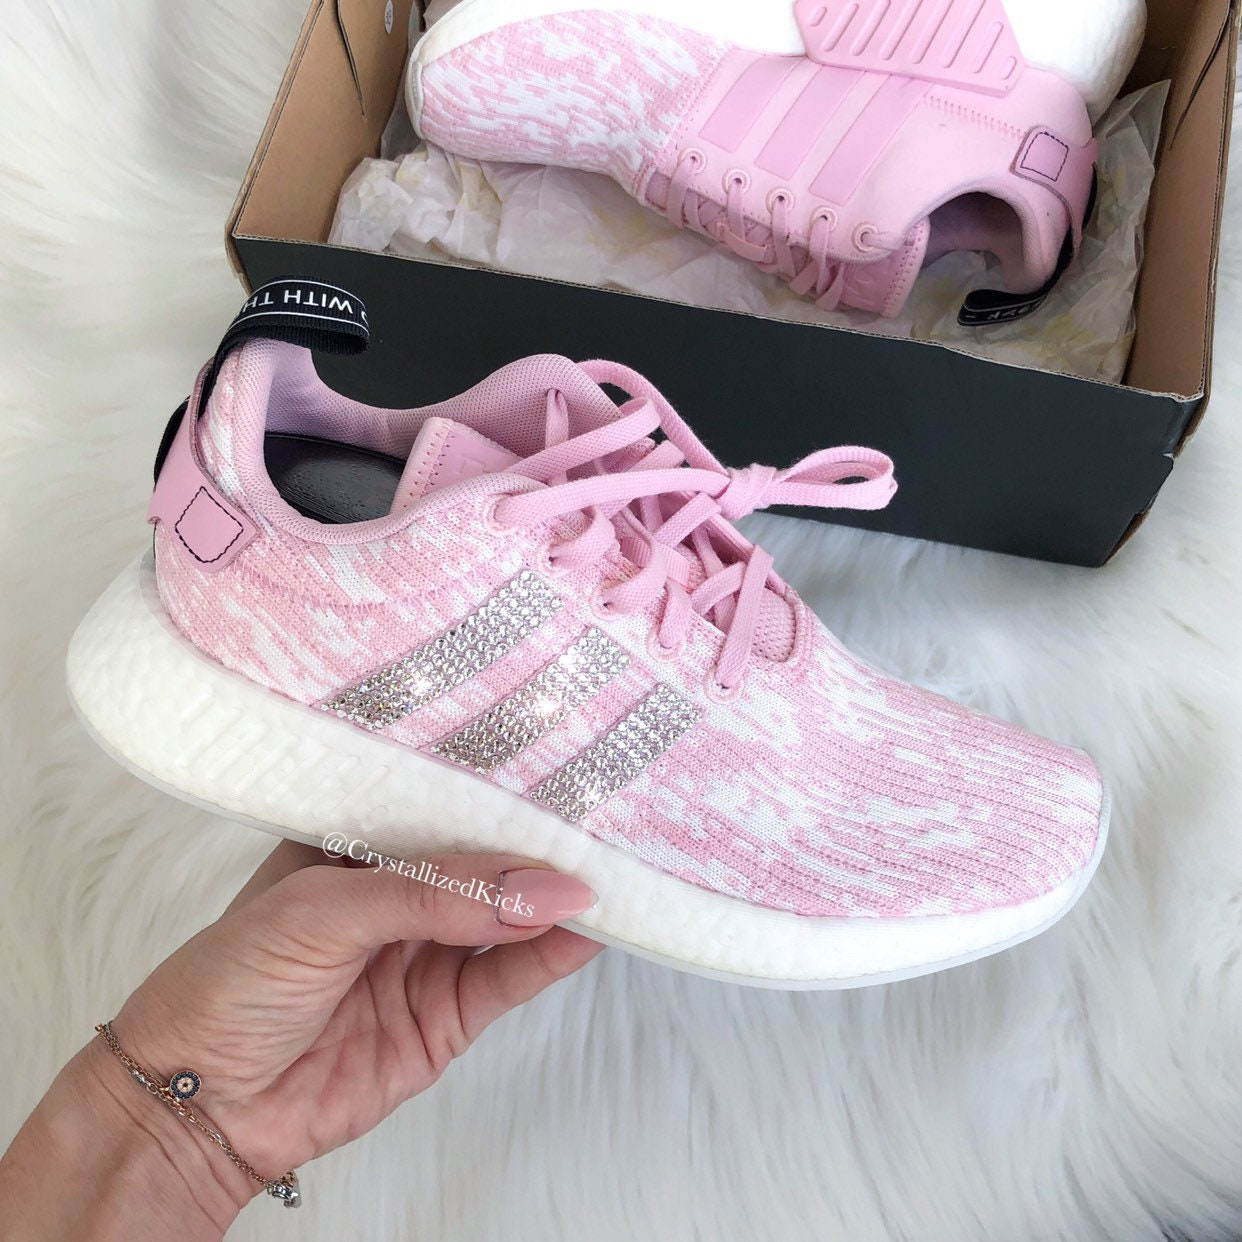 c68920bb0 Swarovski Adidas Nmd Runner R2 Pink Made with SWAROVSKI®